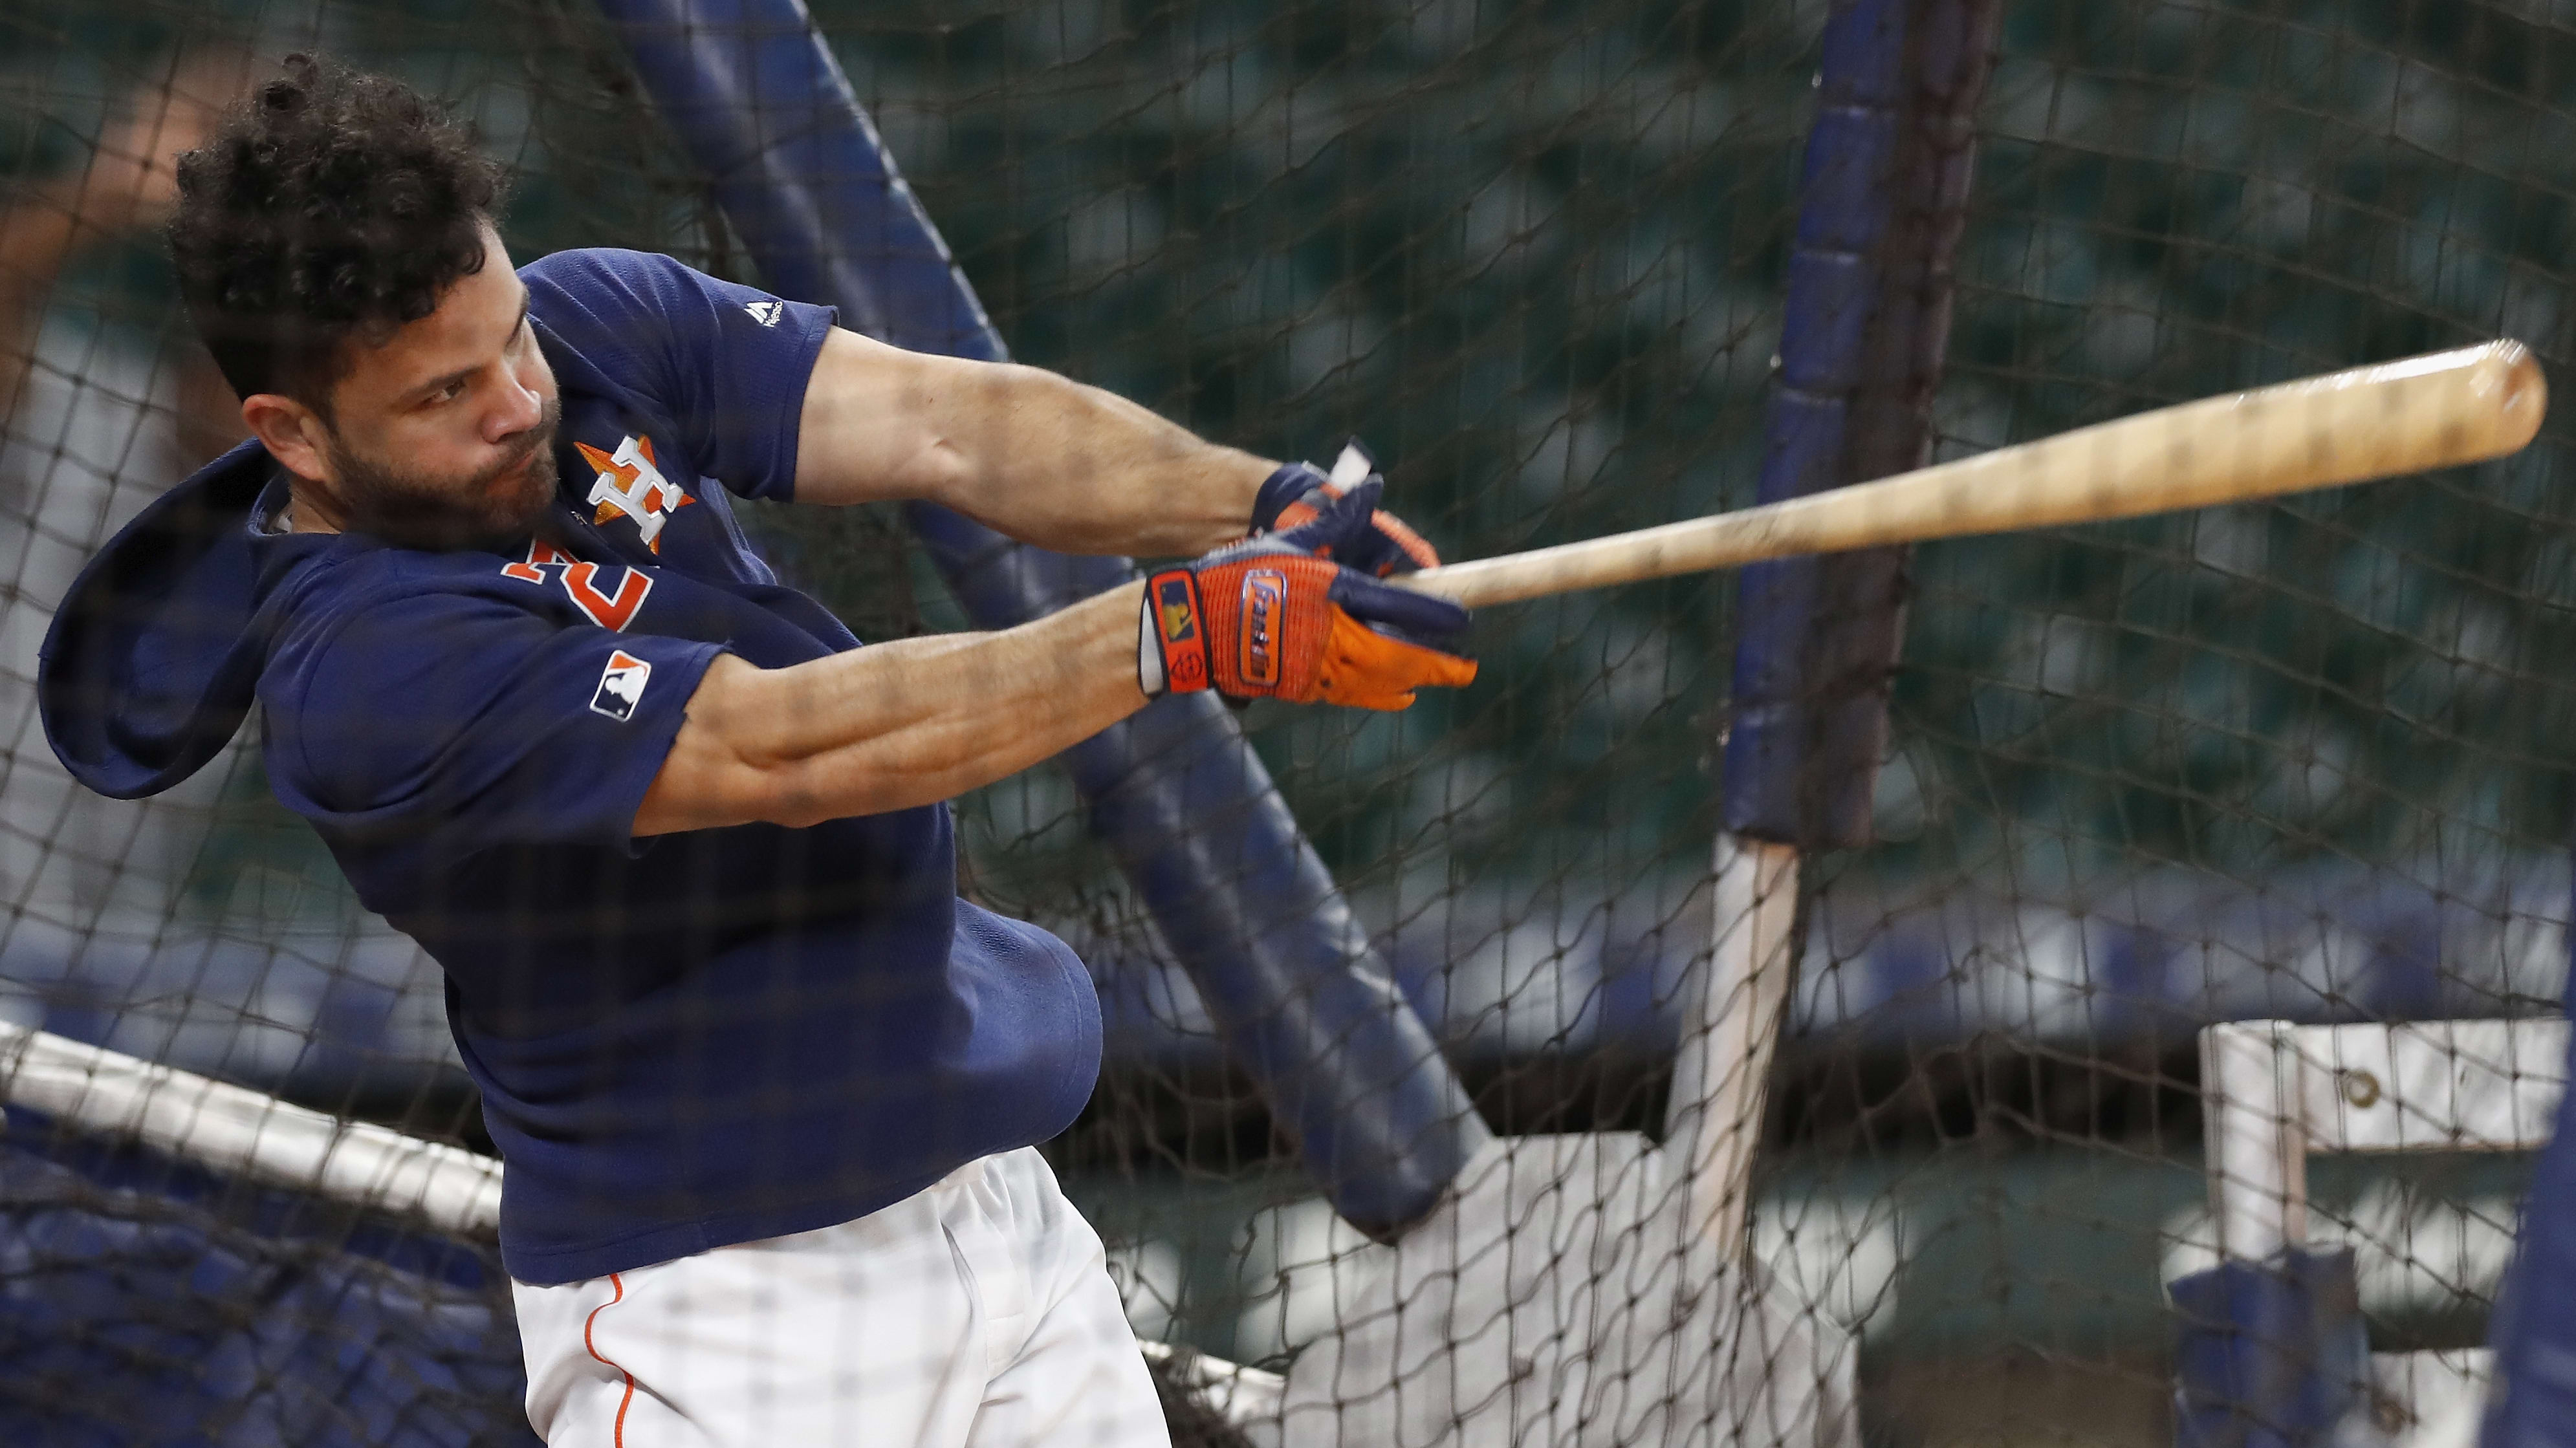 HOUSTON, TX - MAY 23:  Jose Altuve #27 of the Houston Astros takes batting practice before the game against the Chicago White Sox at Minute Maid Park on May 23, 2019 in Houston, Texas.  (Photo by Tim Warner/Getty Images)